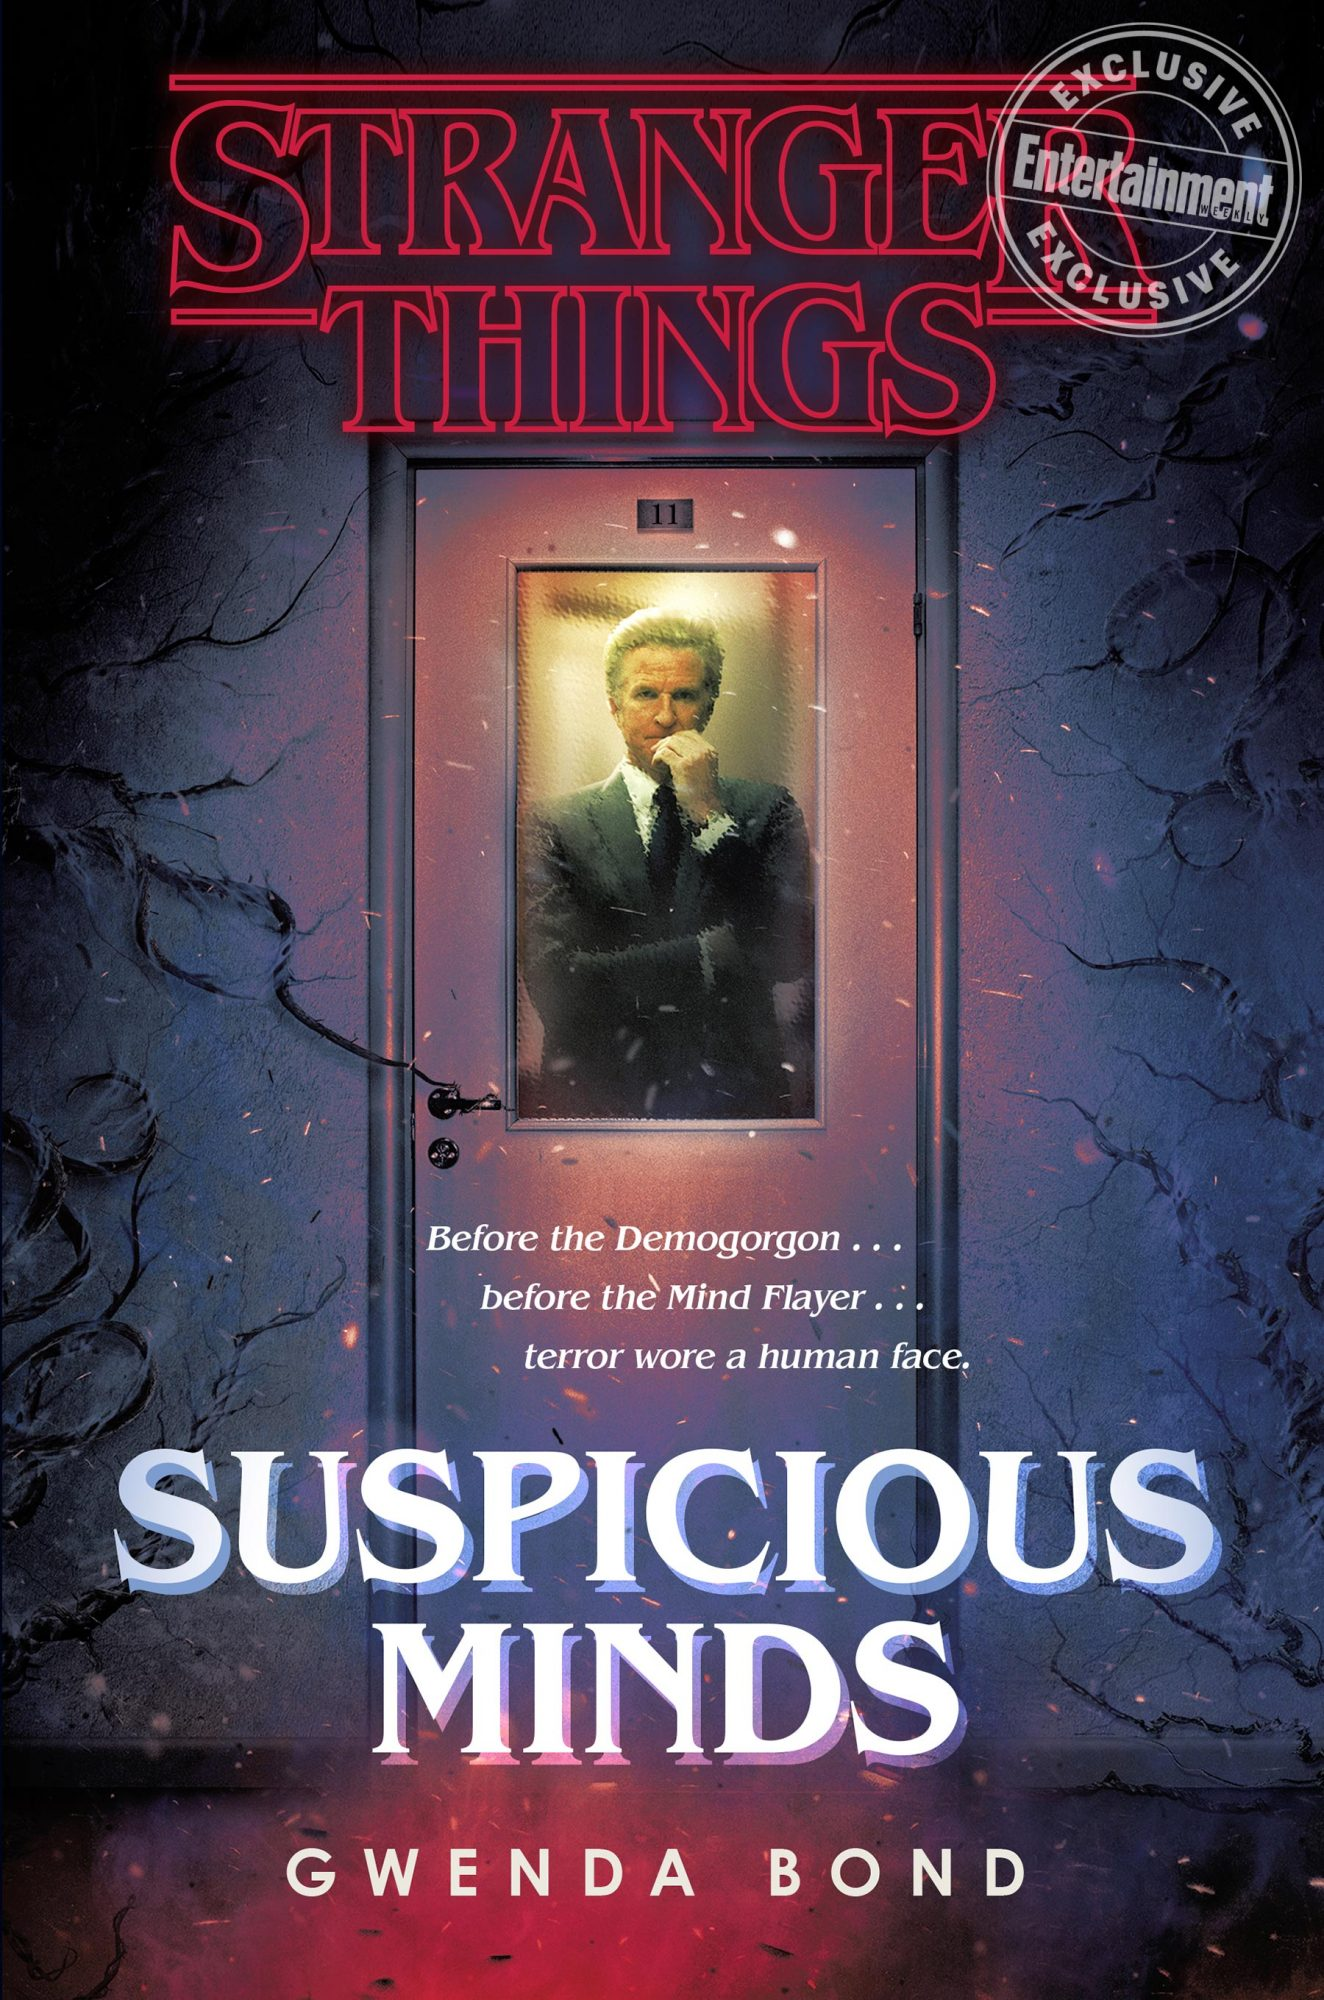 Stranger Things: Suspicious Minds by Gwenda BondCR: TK from David